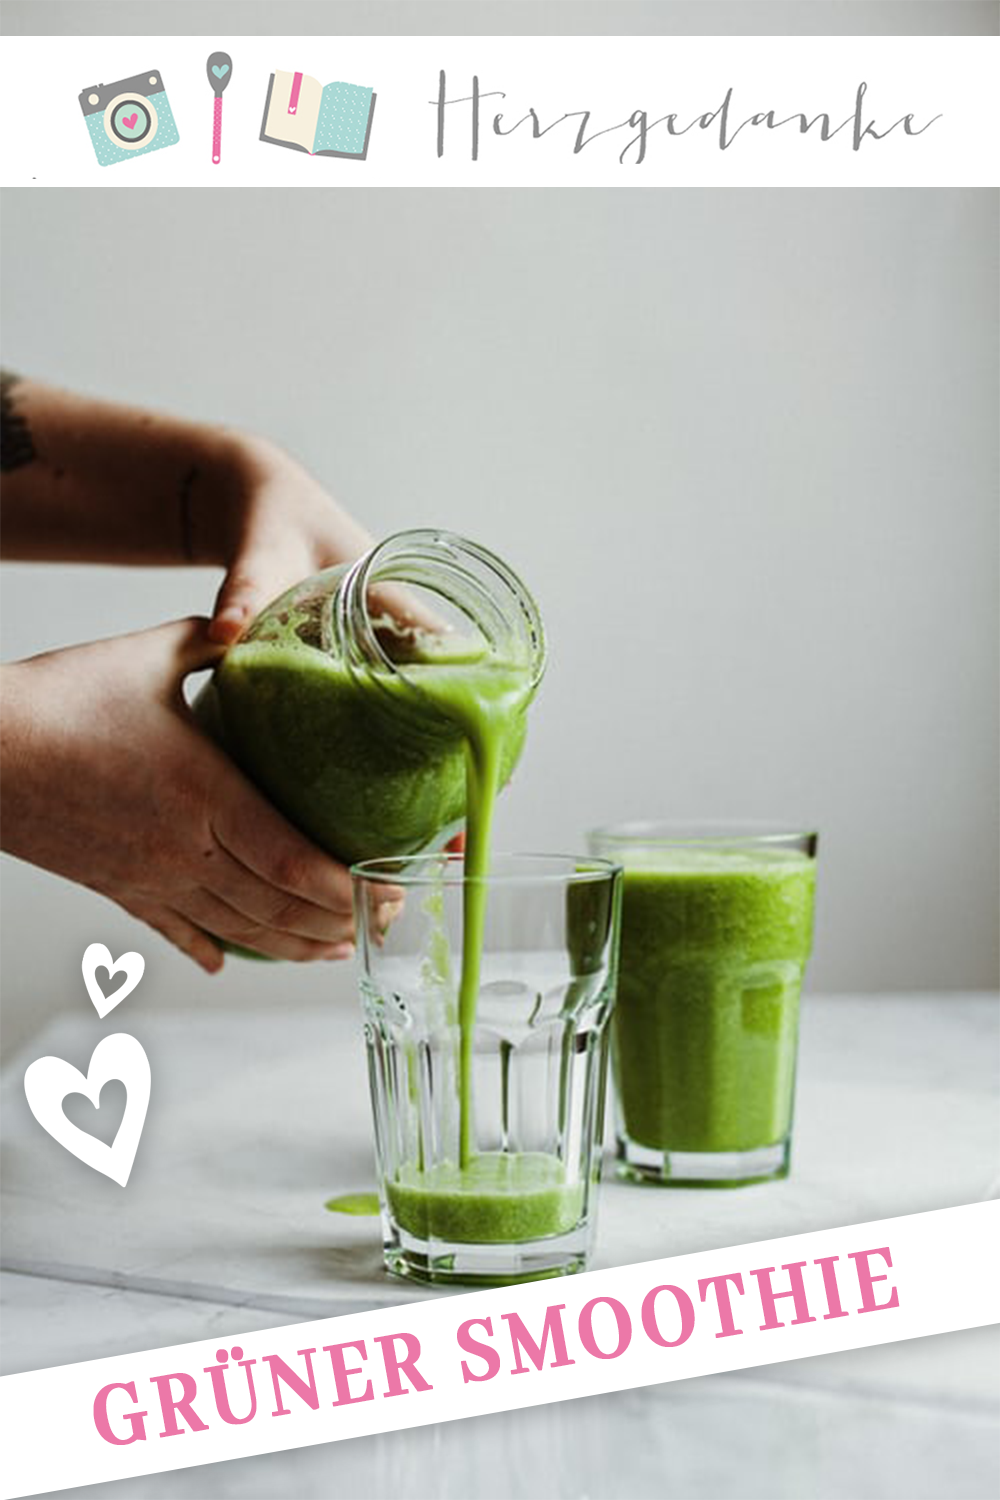 Grüner Smoothie aus dem Thermomix® - Photo by Alex Loup on Unsplash